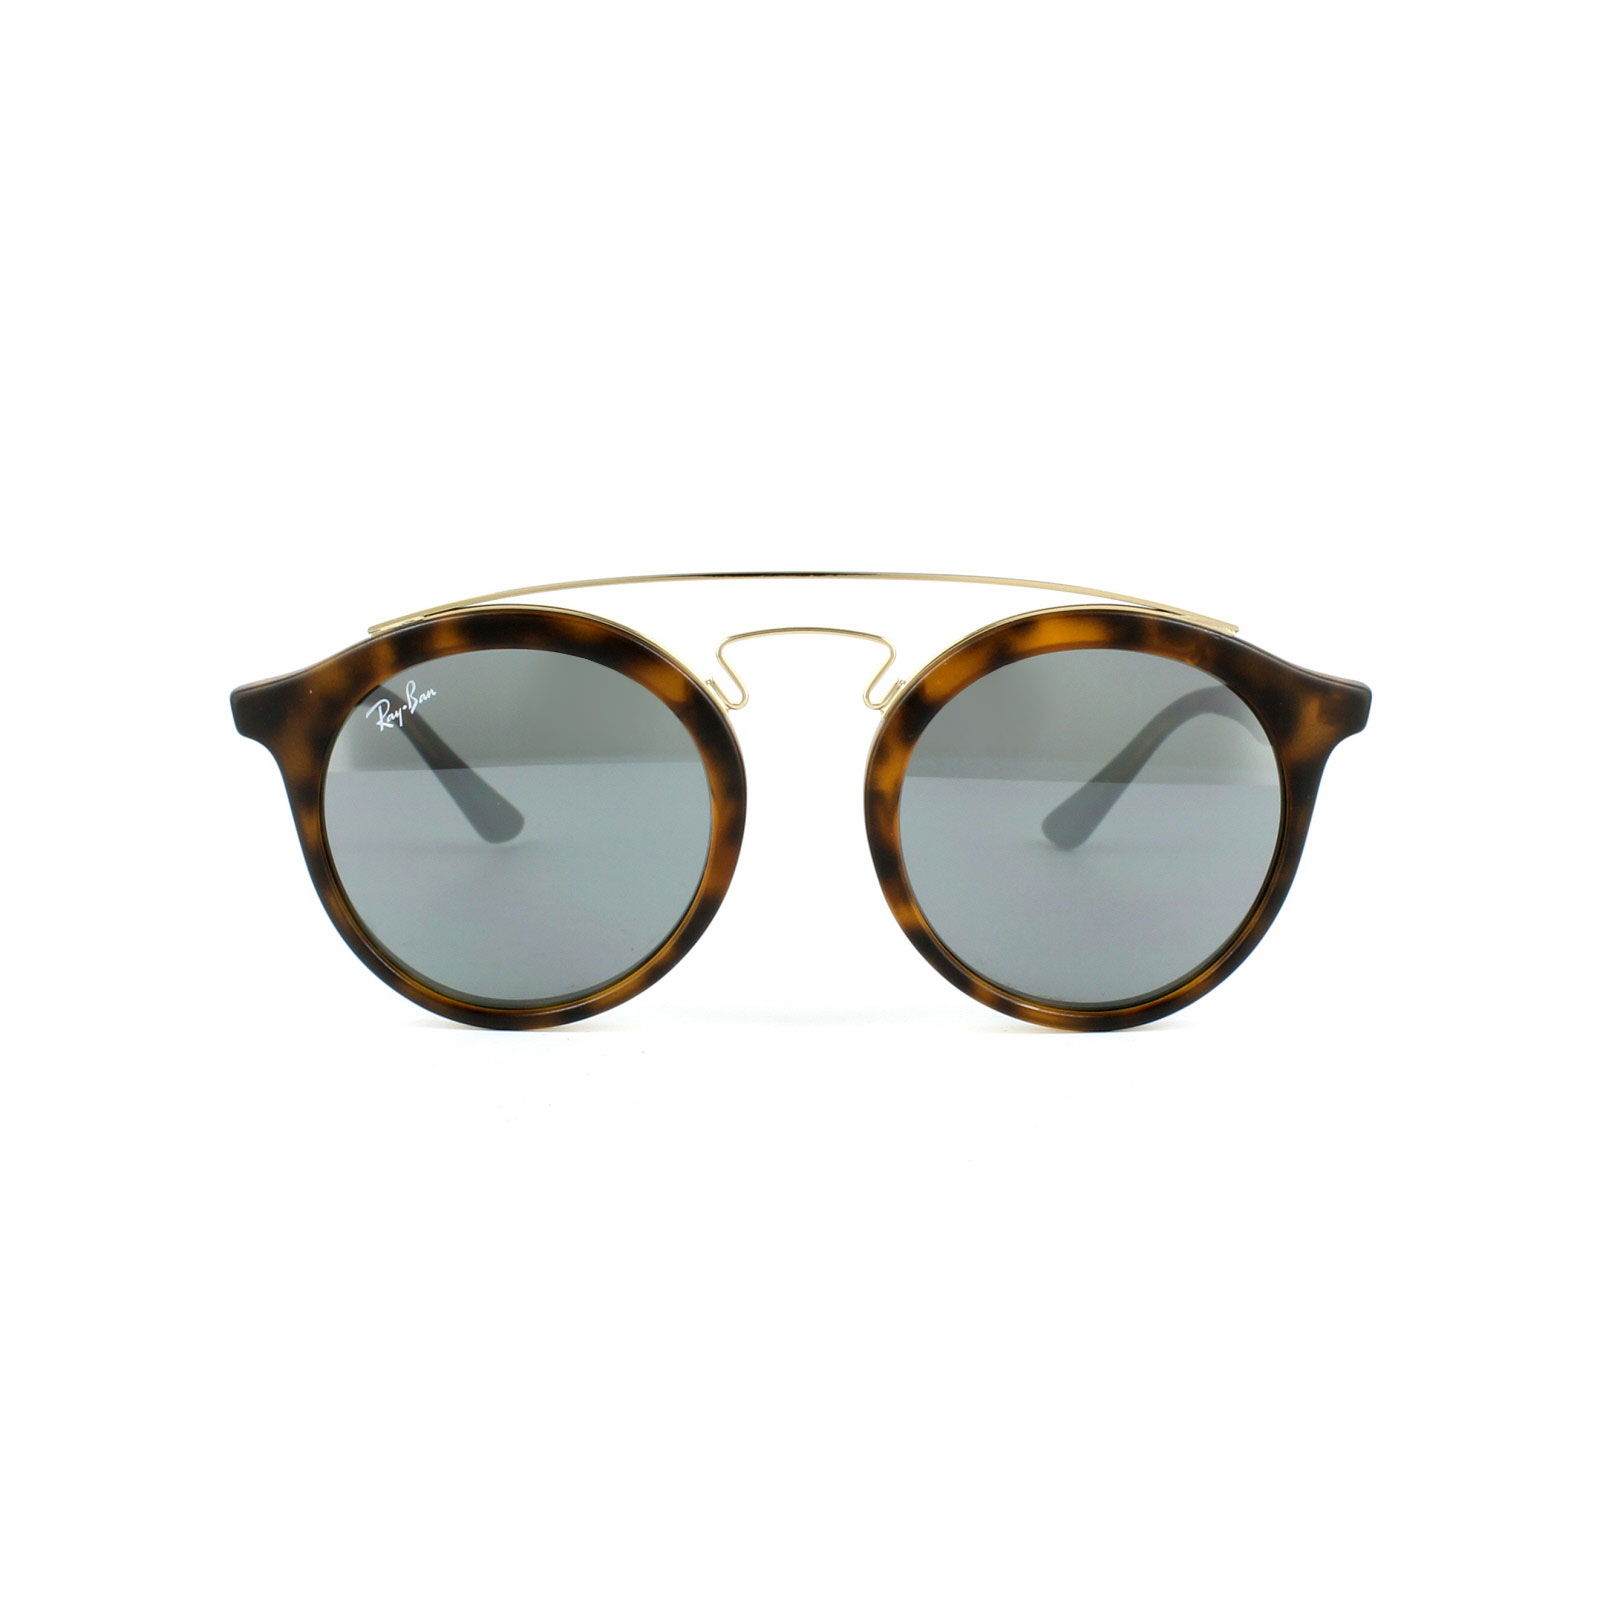 Double High Brown Round Sunglasses in Matte Havana Grey Silver Mirror RB4256 60926G 46 Ray-Ban t4bkUik42